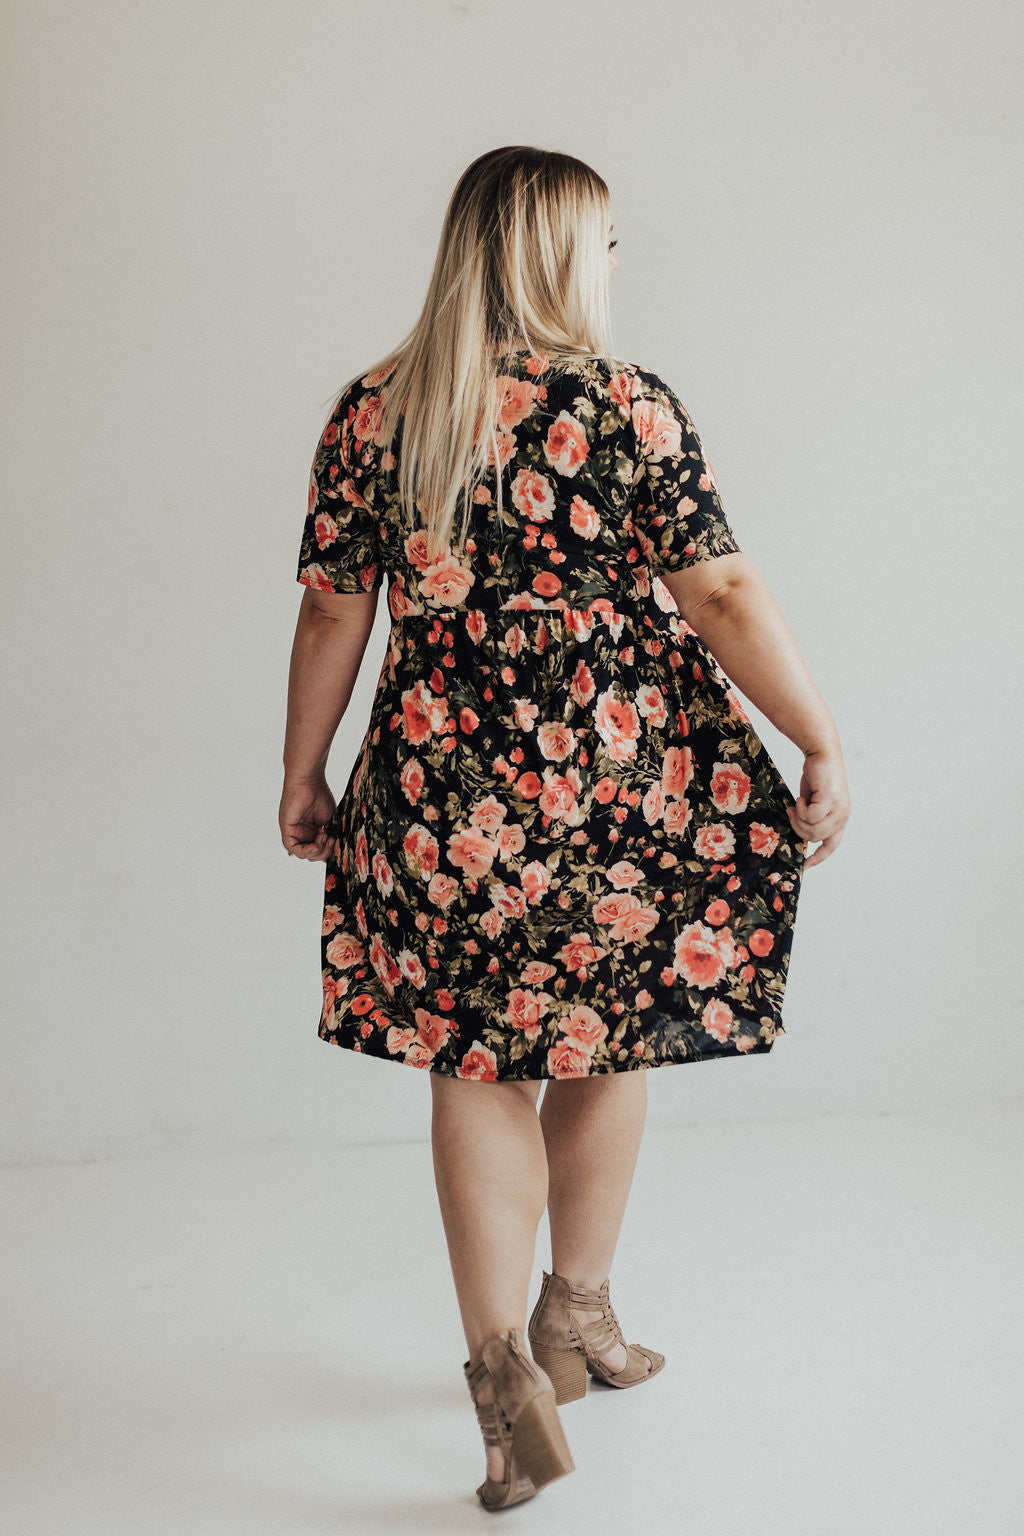 Floral midi dress - Black floral print (Curvy)